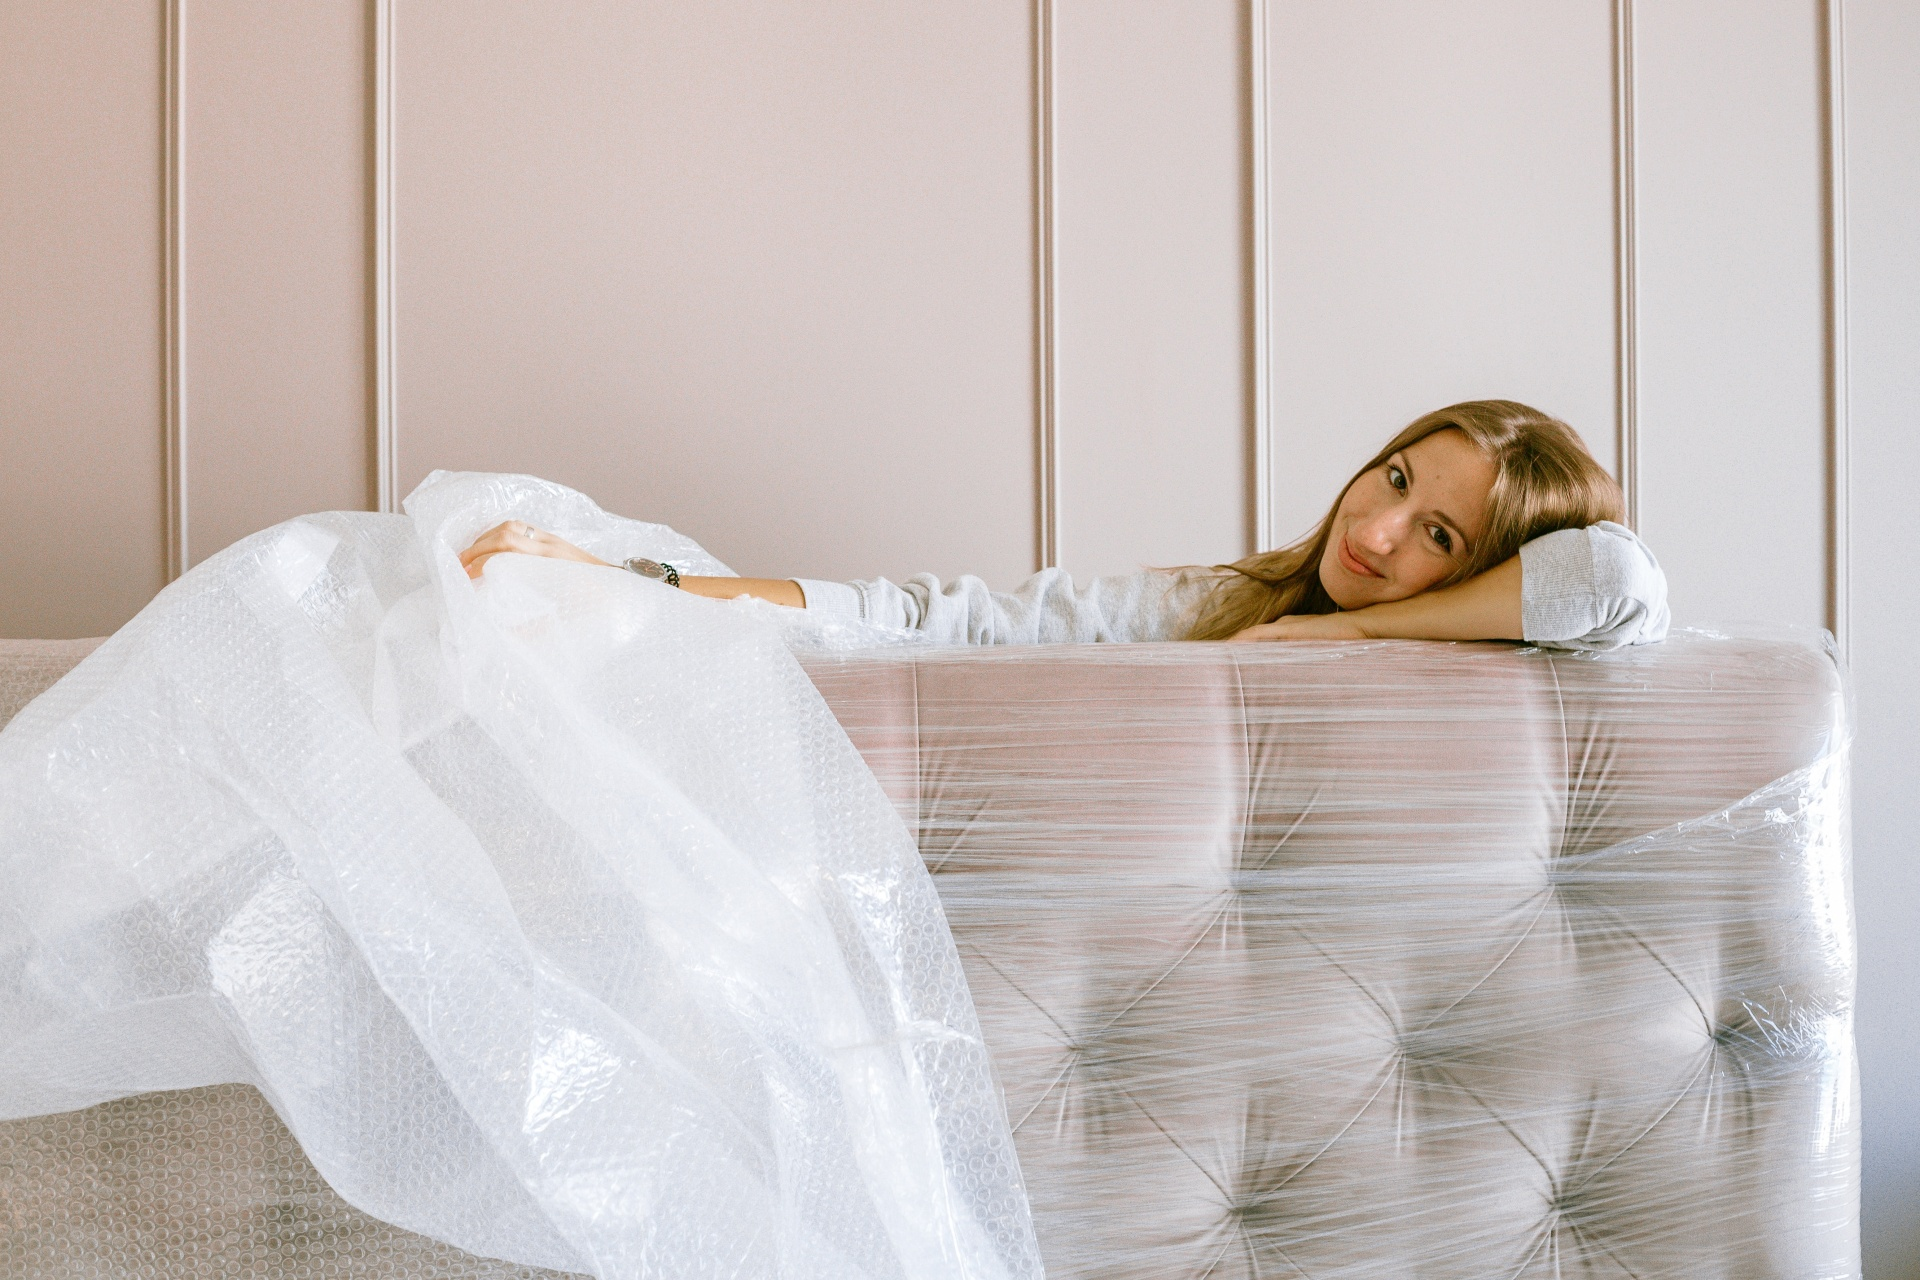 Woman Posing with Her New Headboard